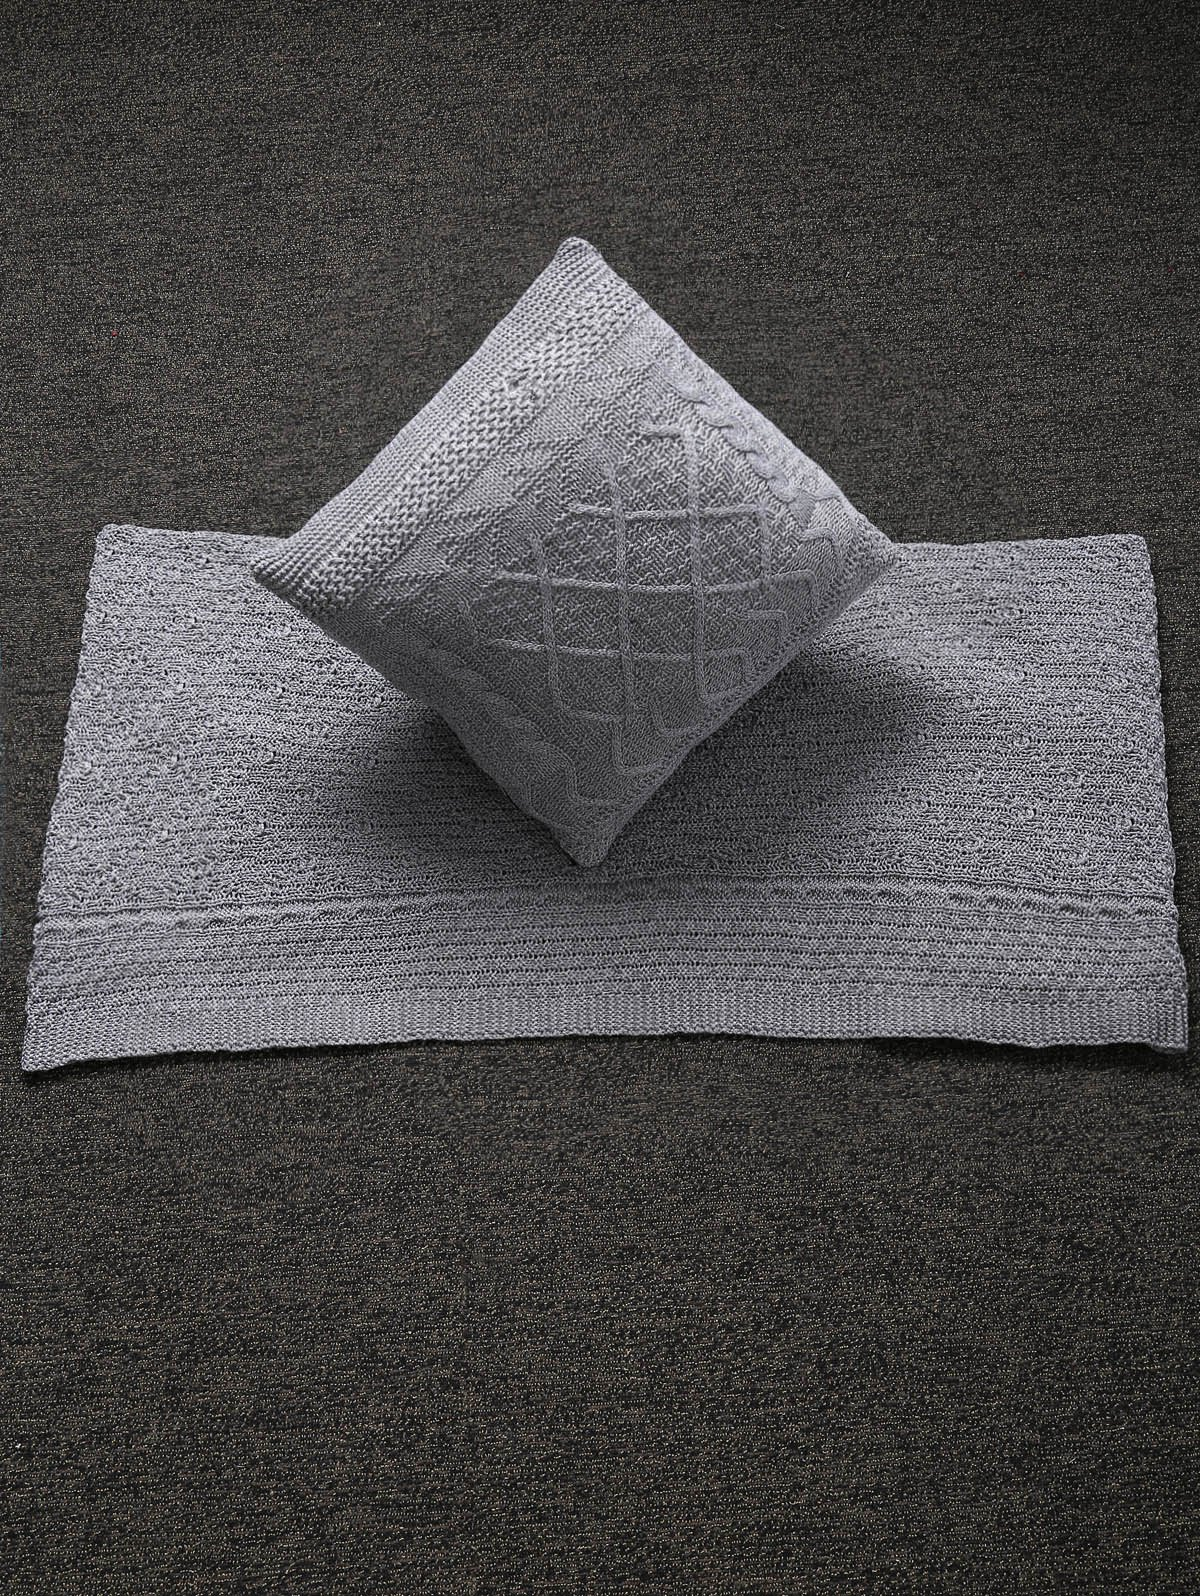 Stylish Home Decor Warm Comfortable Rhombus Knitted Pillow Case and Blanket - GRAY